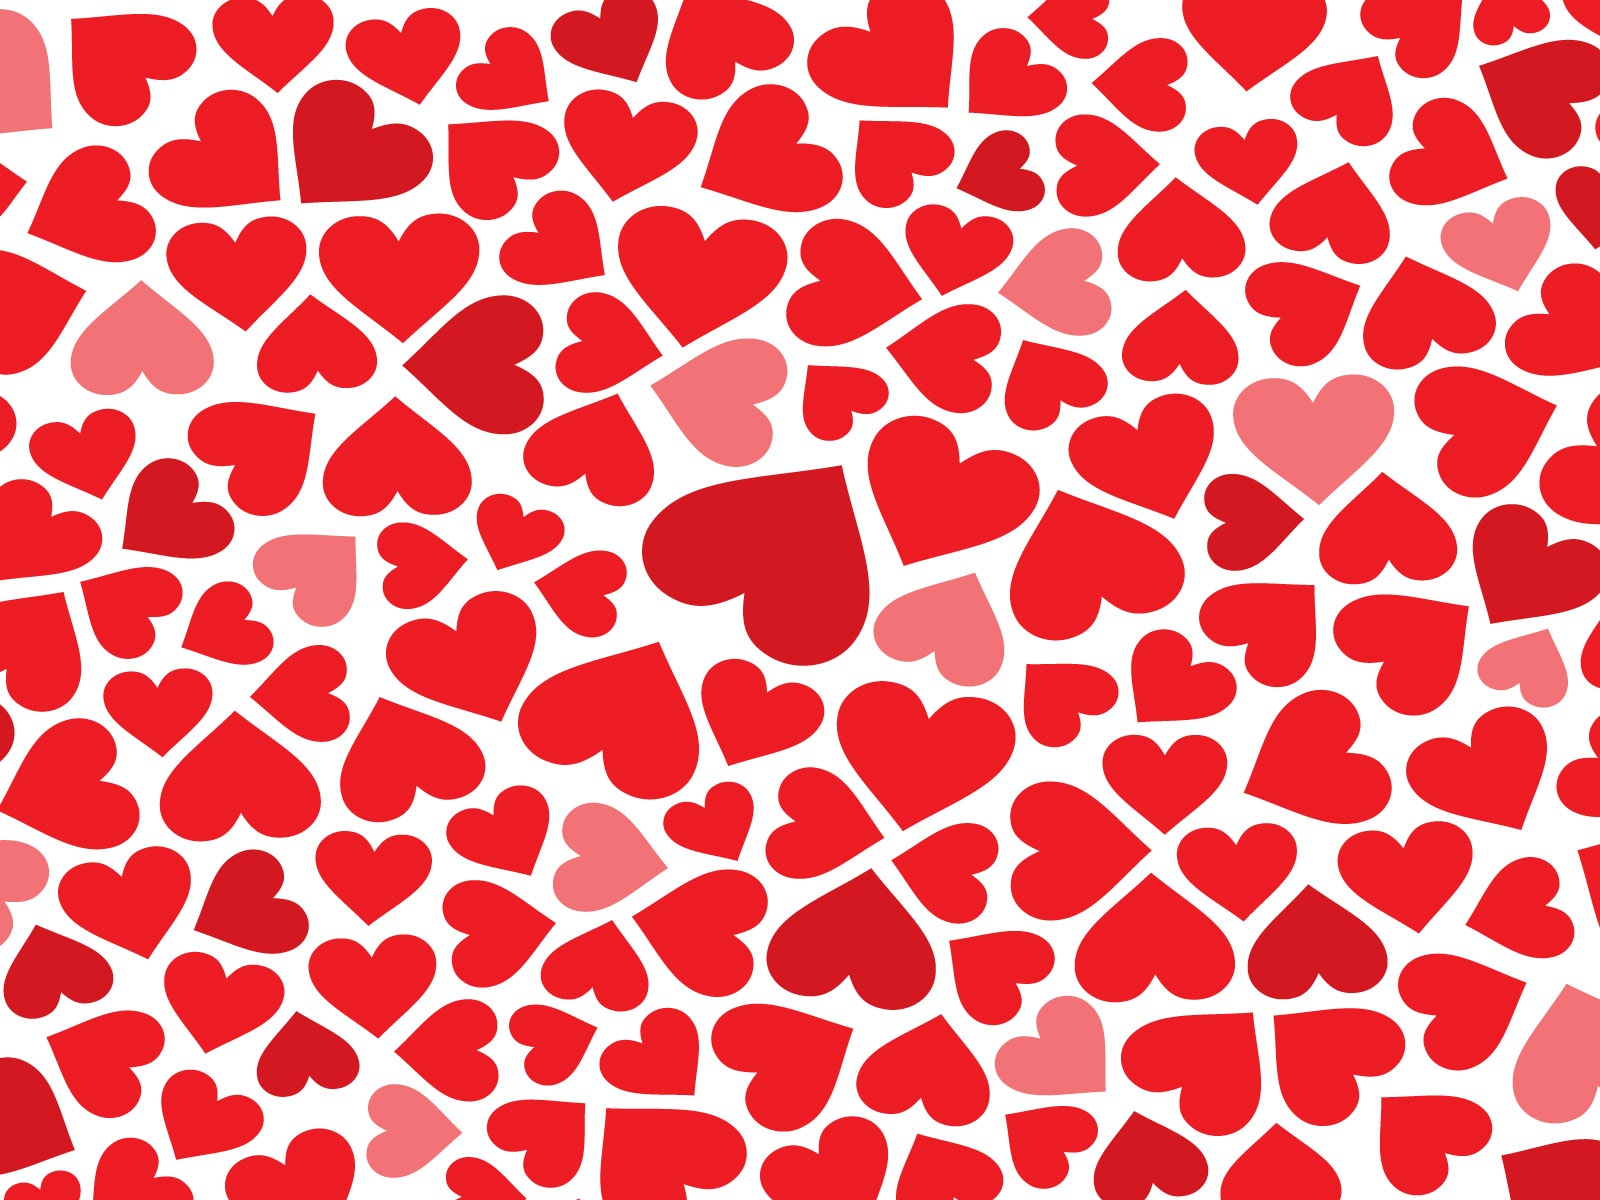 click to free download the wallpaper--Romantic Post, Red Hearts in Various Sizes, Red to Pink, Seem on the Move